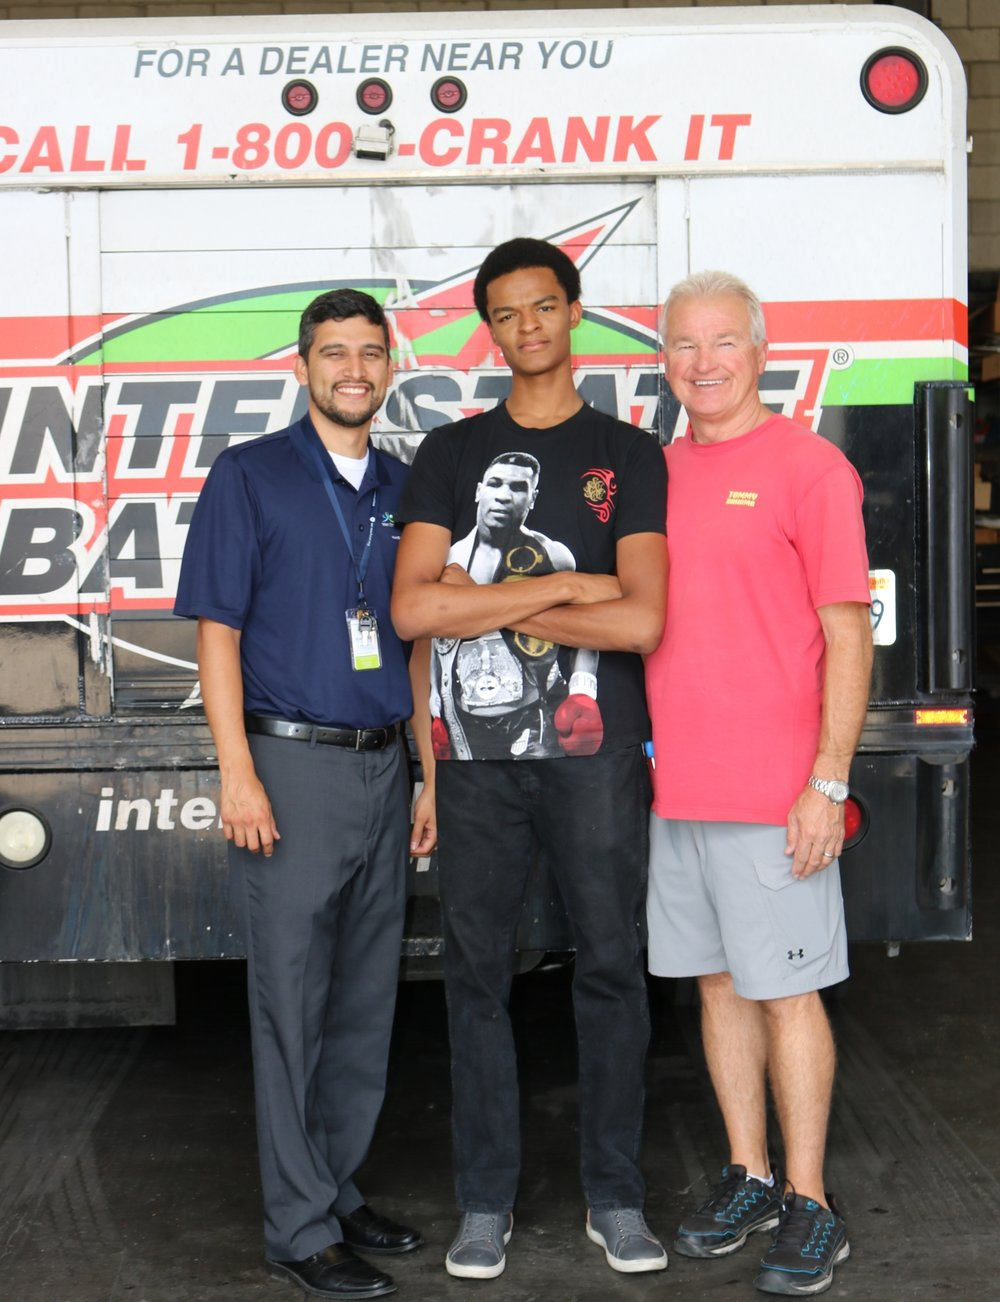 Looking determined, Israel Clayton [center] poses with Jorge De Leon [left] and Rick McCray [right].